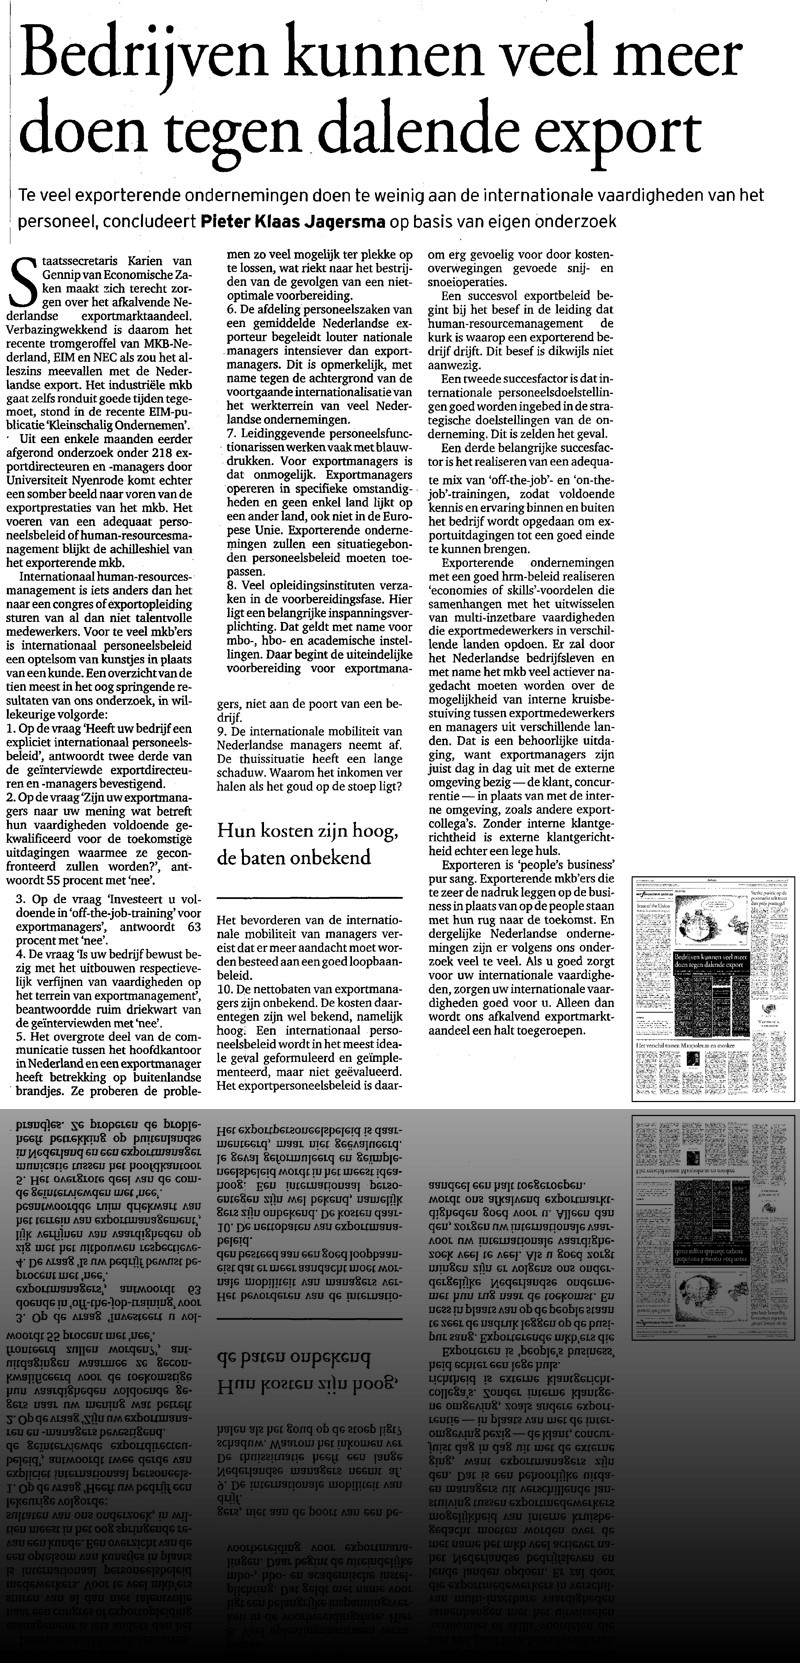 ArticleHetFinancieeleDagblad220104.jpg